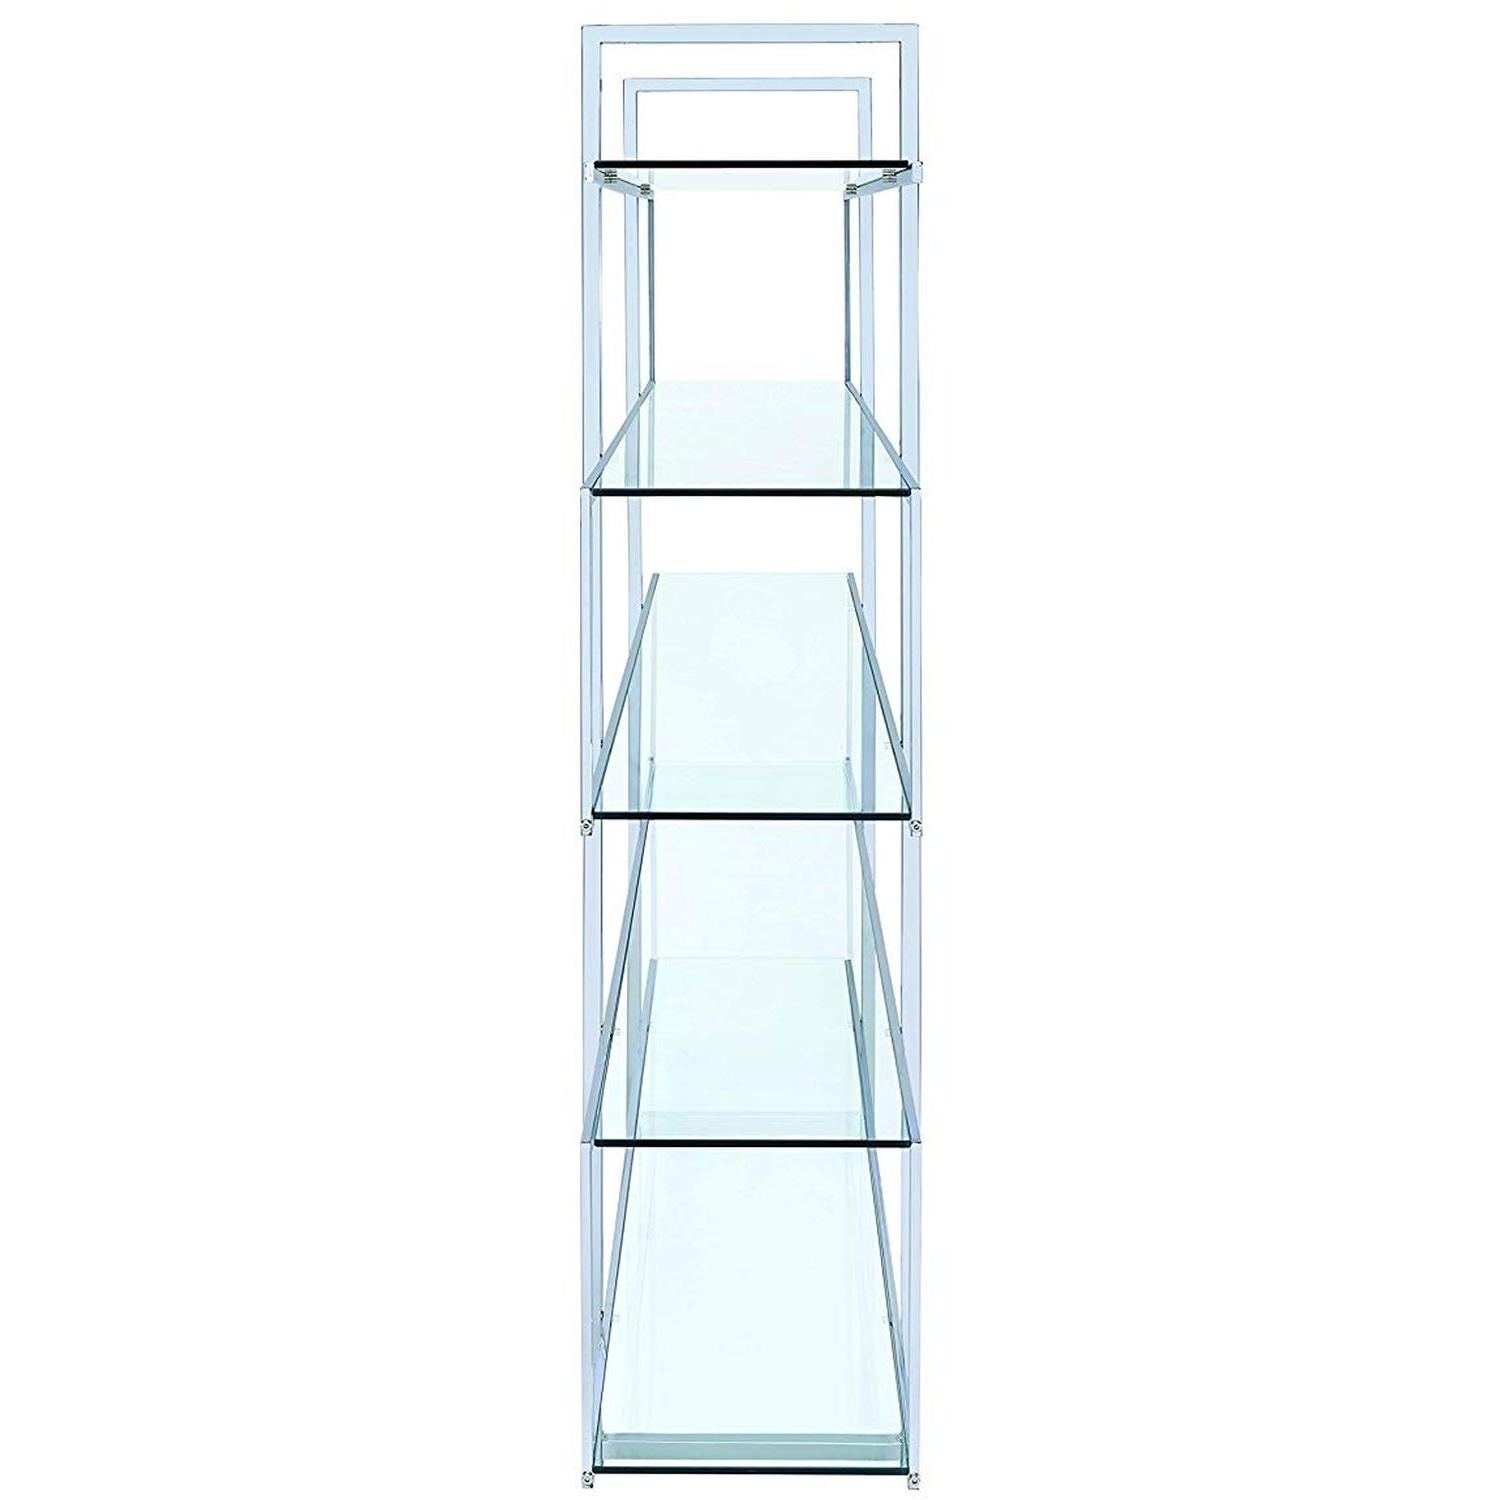 4-Tier White Bookcase w/ Chrome Metal Bar Accents - image-3